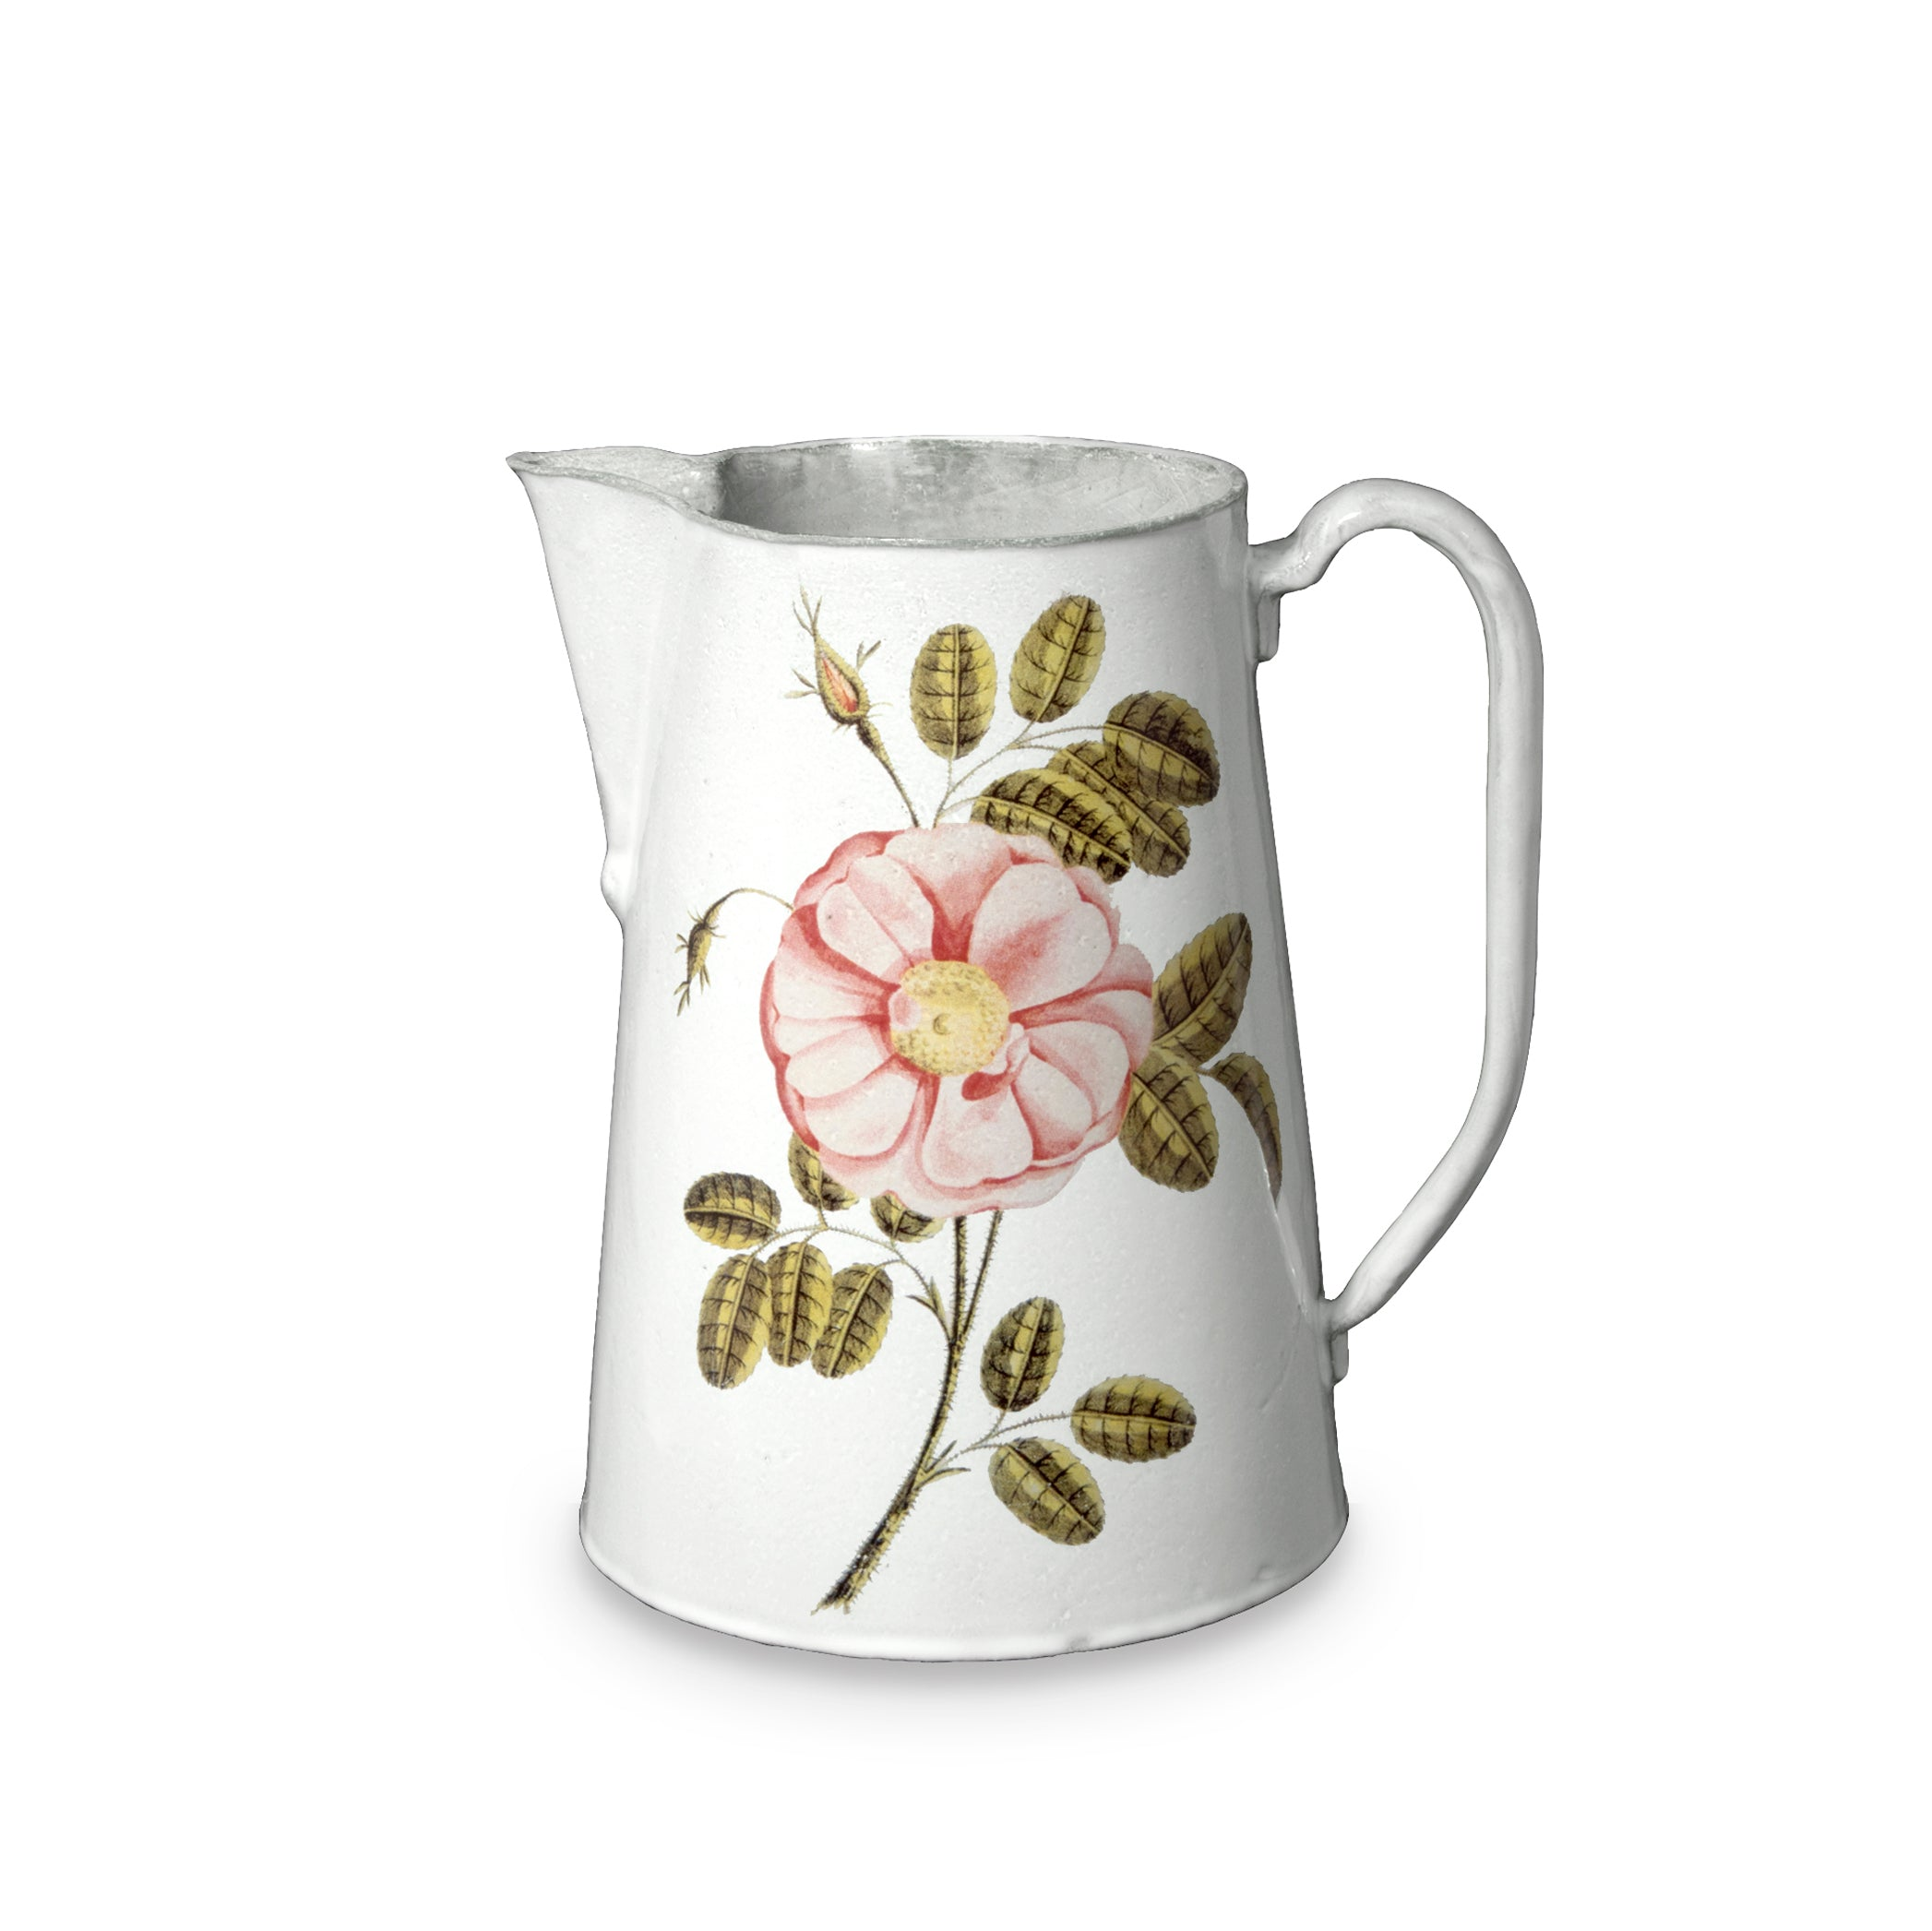 Painted Rose Pitcher by Astier de Villatte